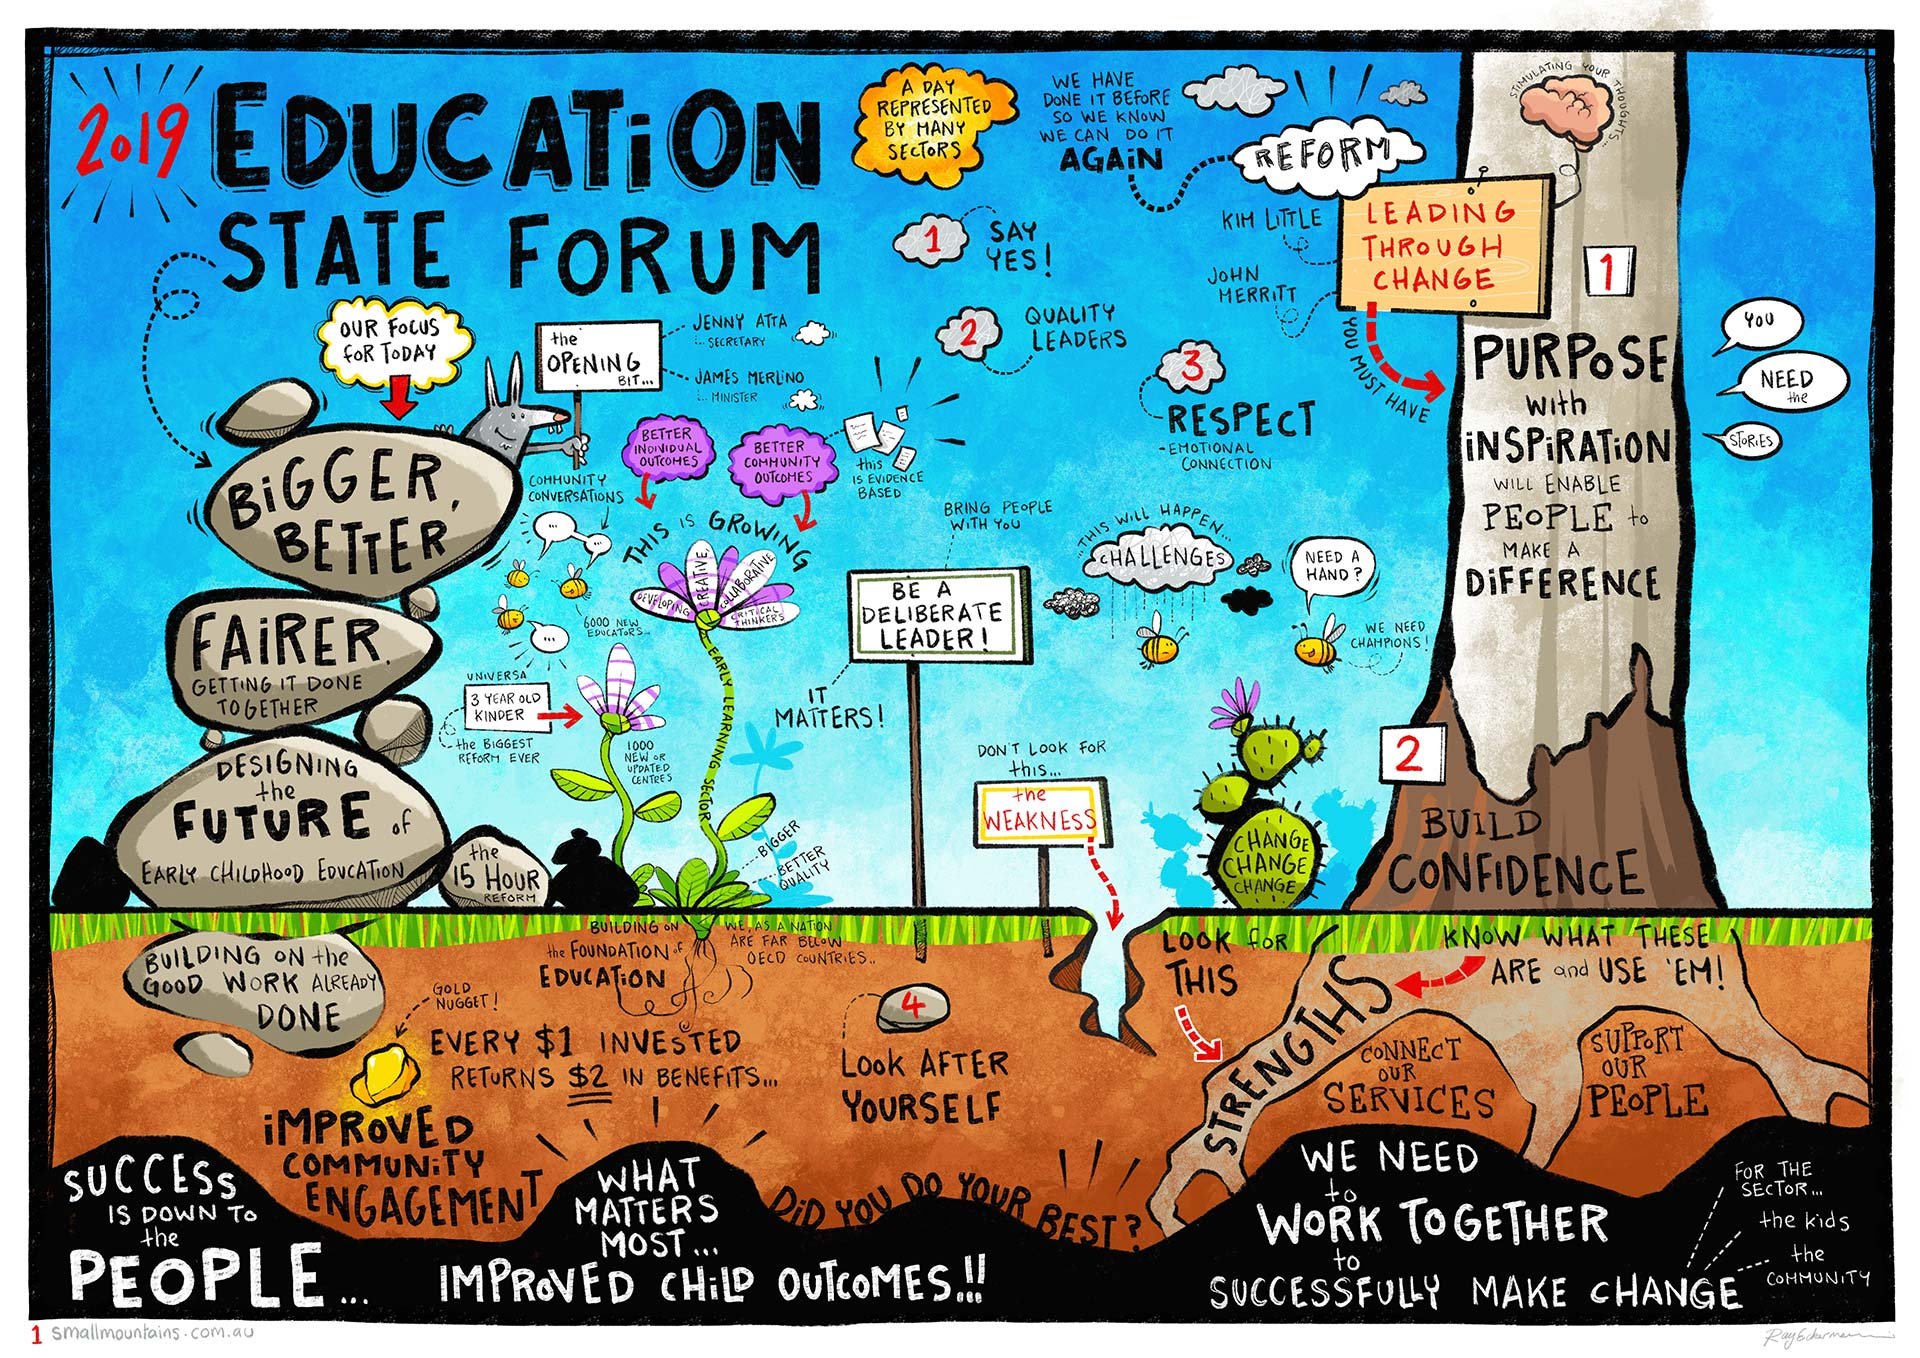 2019 Education State Forum